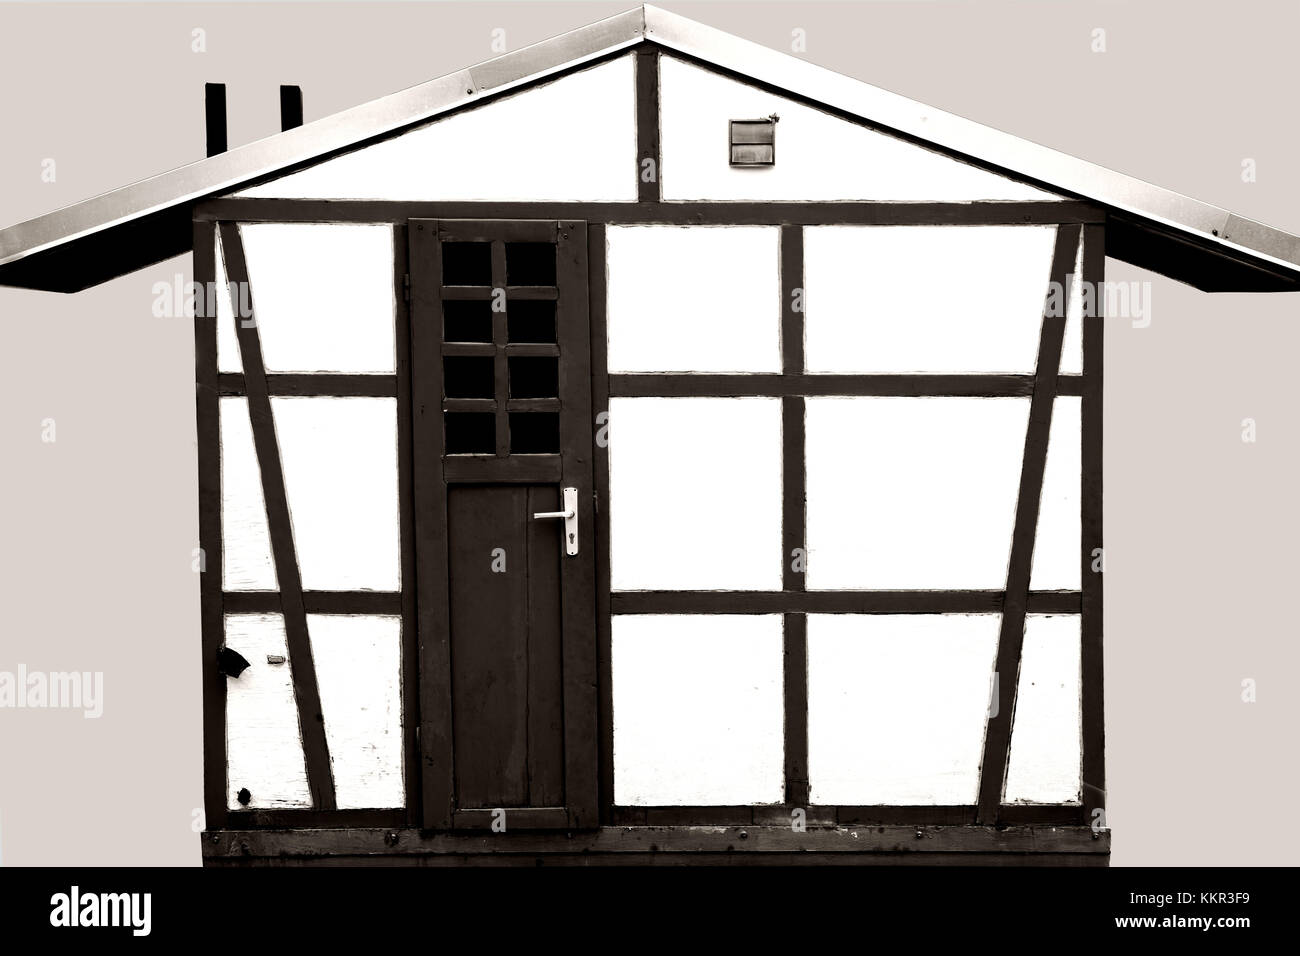 A half-timbered garden shed for storing garden tools and material. Stock Photo